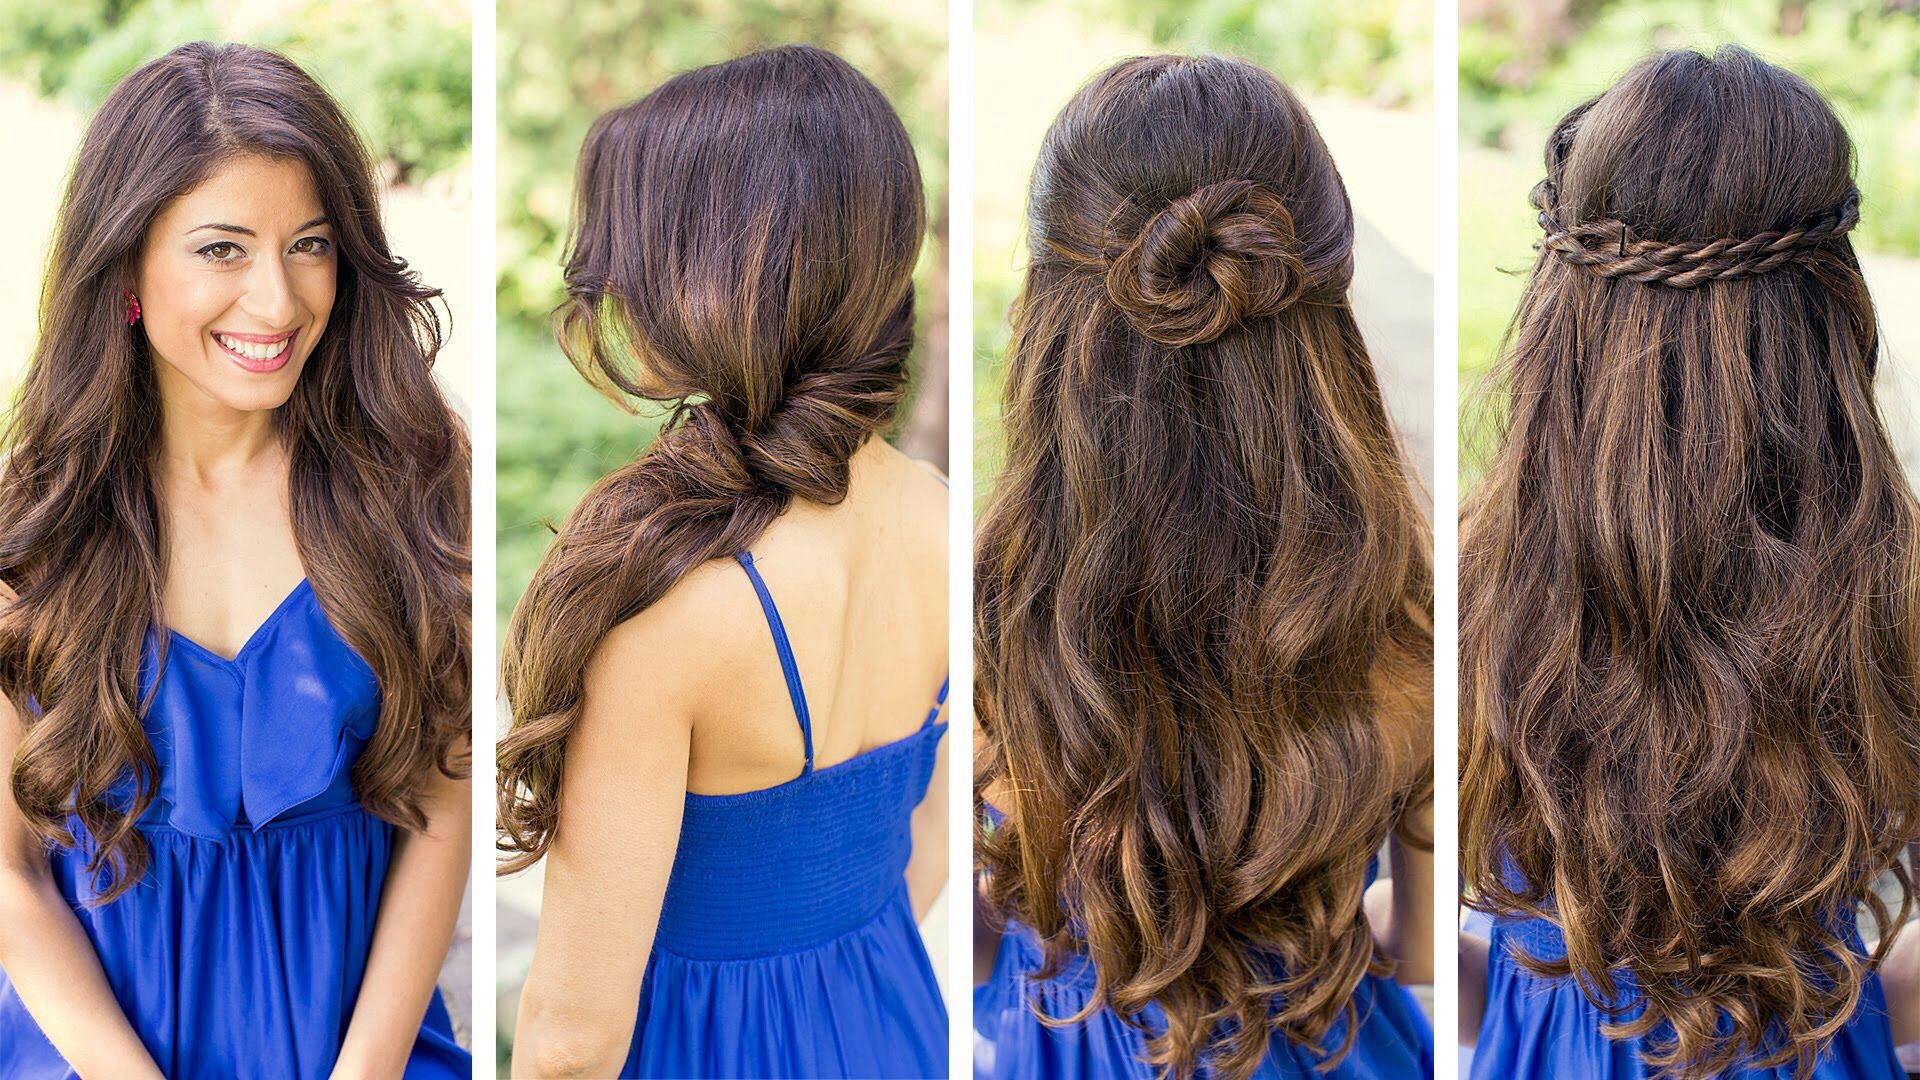 Cute hairstyles hairuc pinterest